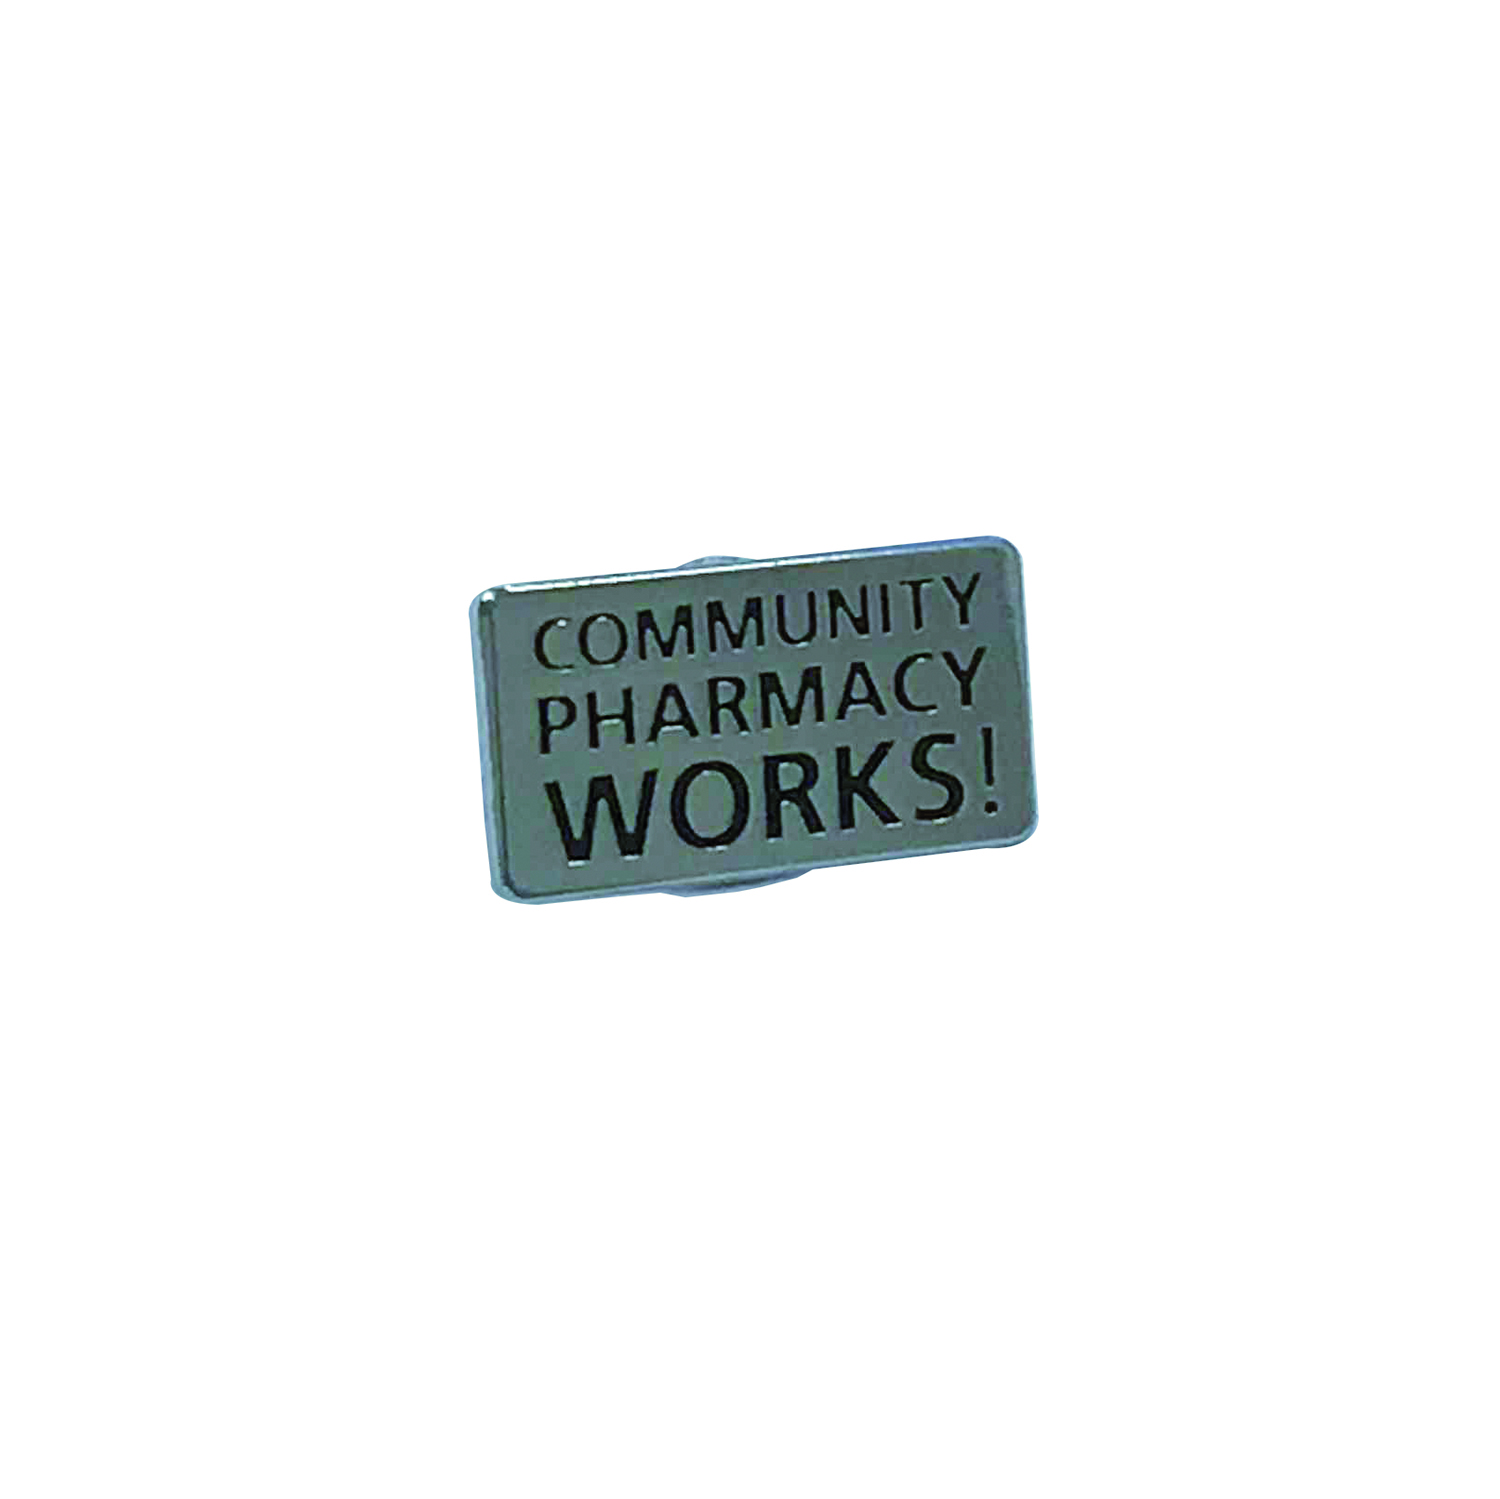 COMMUNITY PHARMACY WORKS! Enamel pin badge